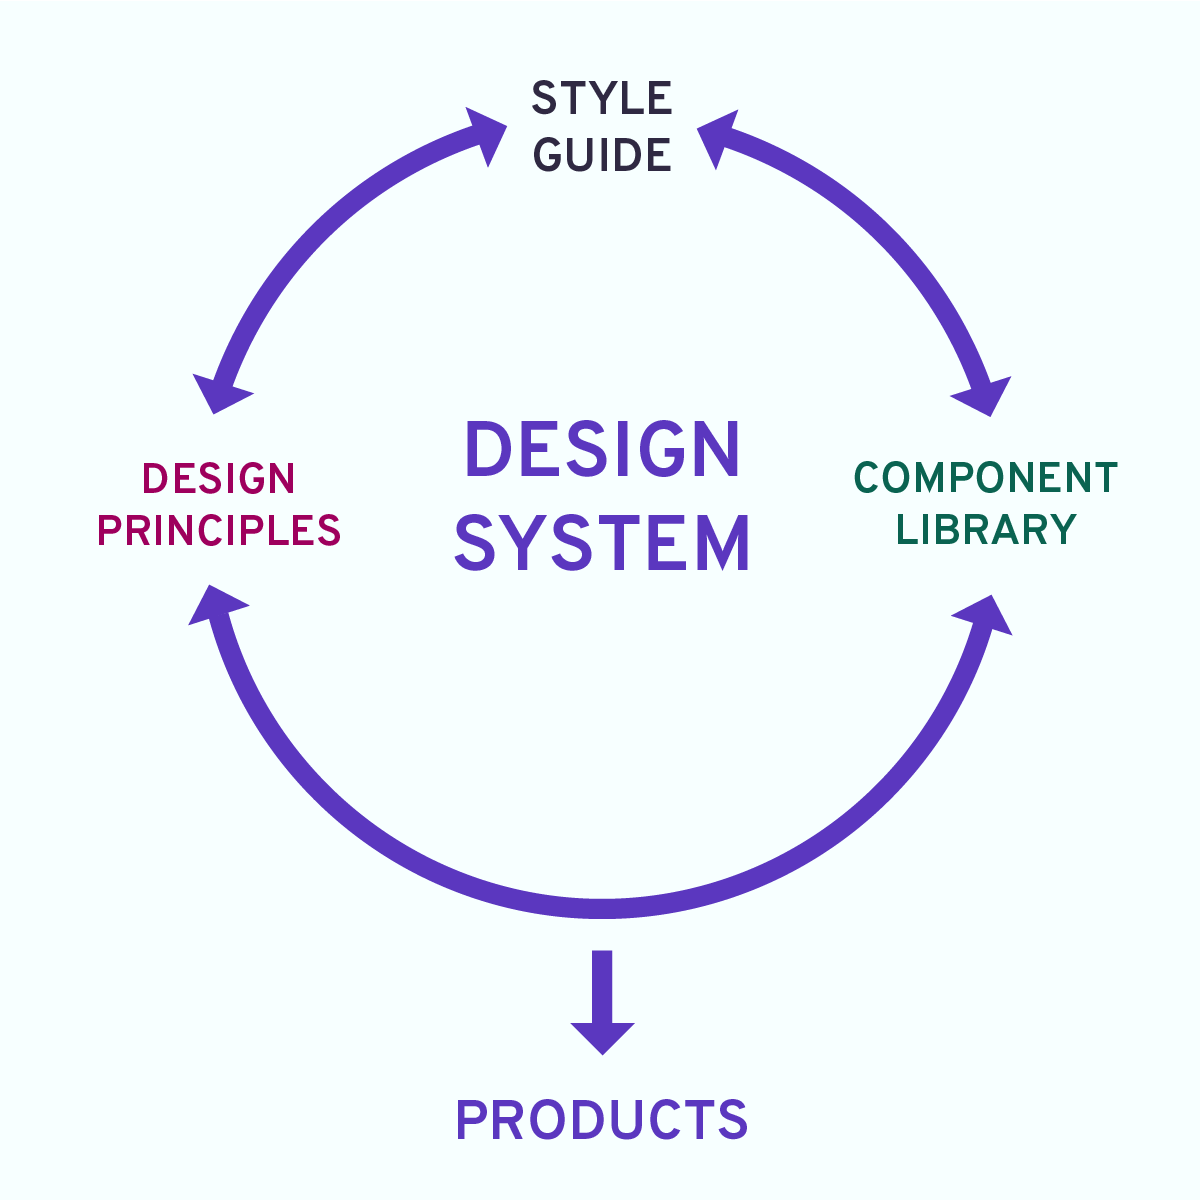 A graph illustrating how a design system operates